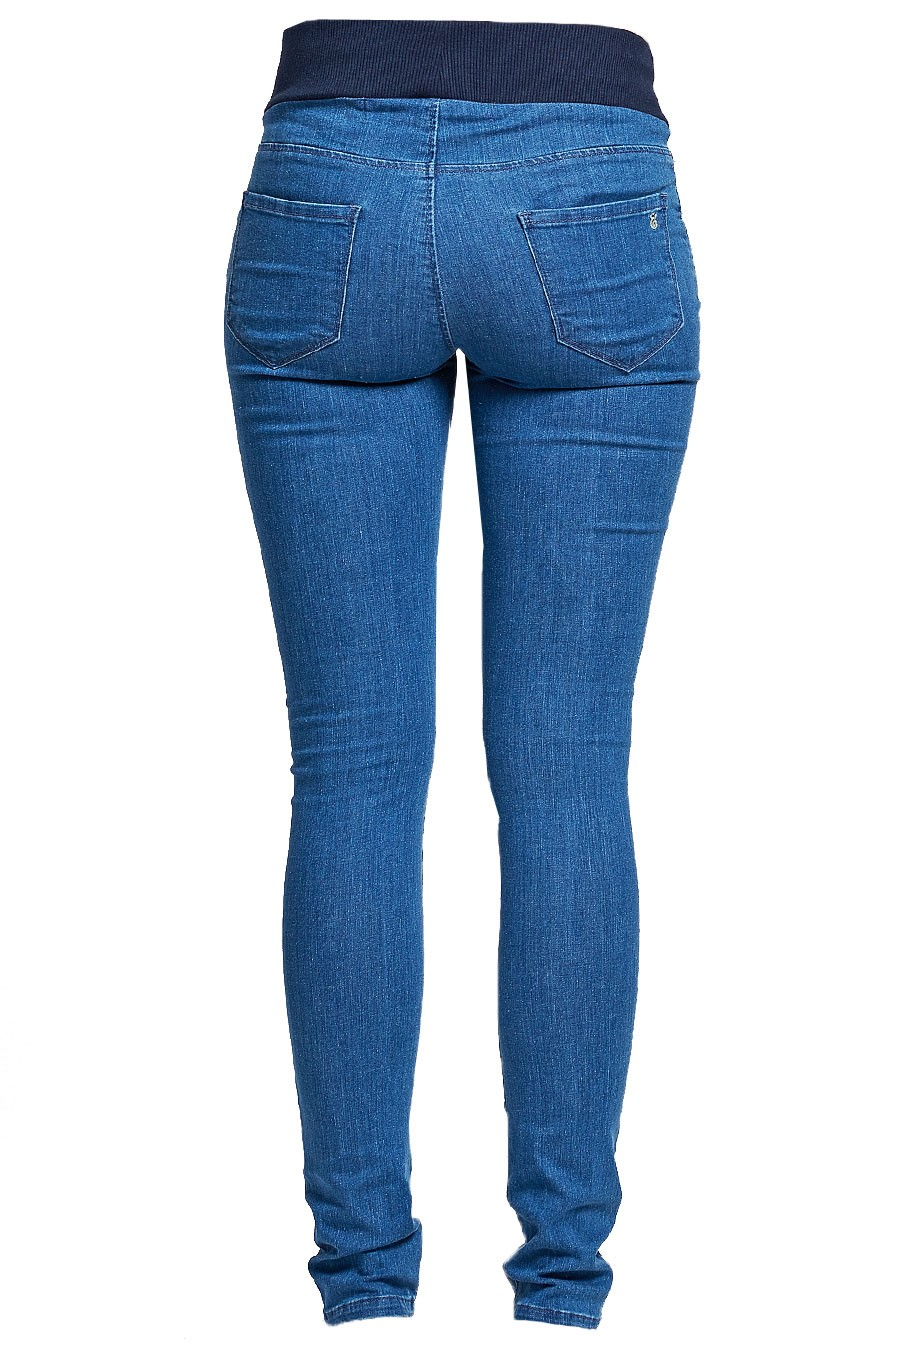 angel skinny jeans are super slim fit in three stylish colours. Black Bedroom Furniture Sets. Home Design Ideas